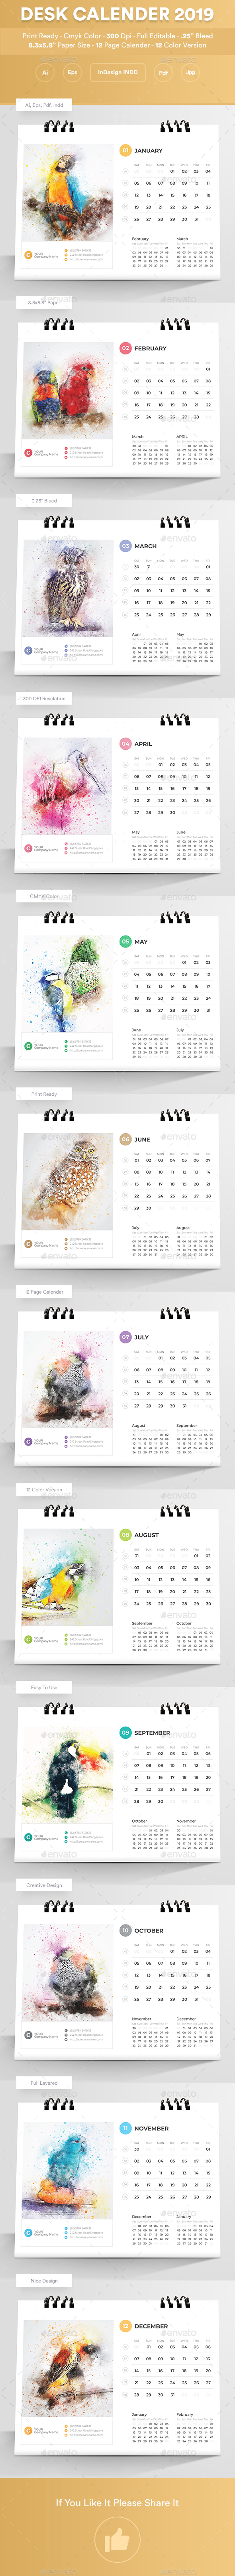 Desk Calender 2019 - Calendars Stationery